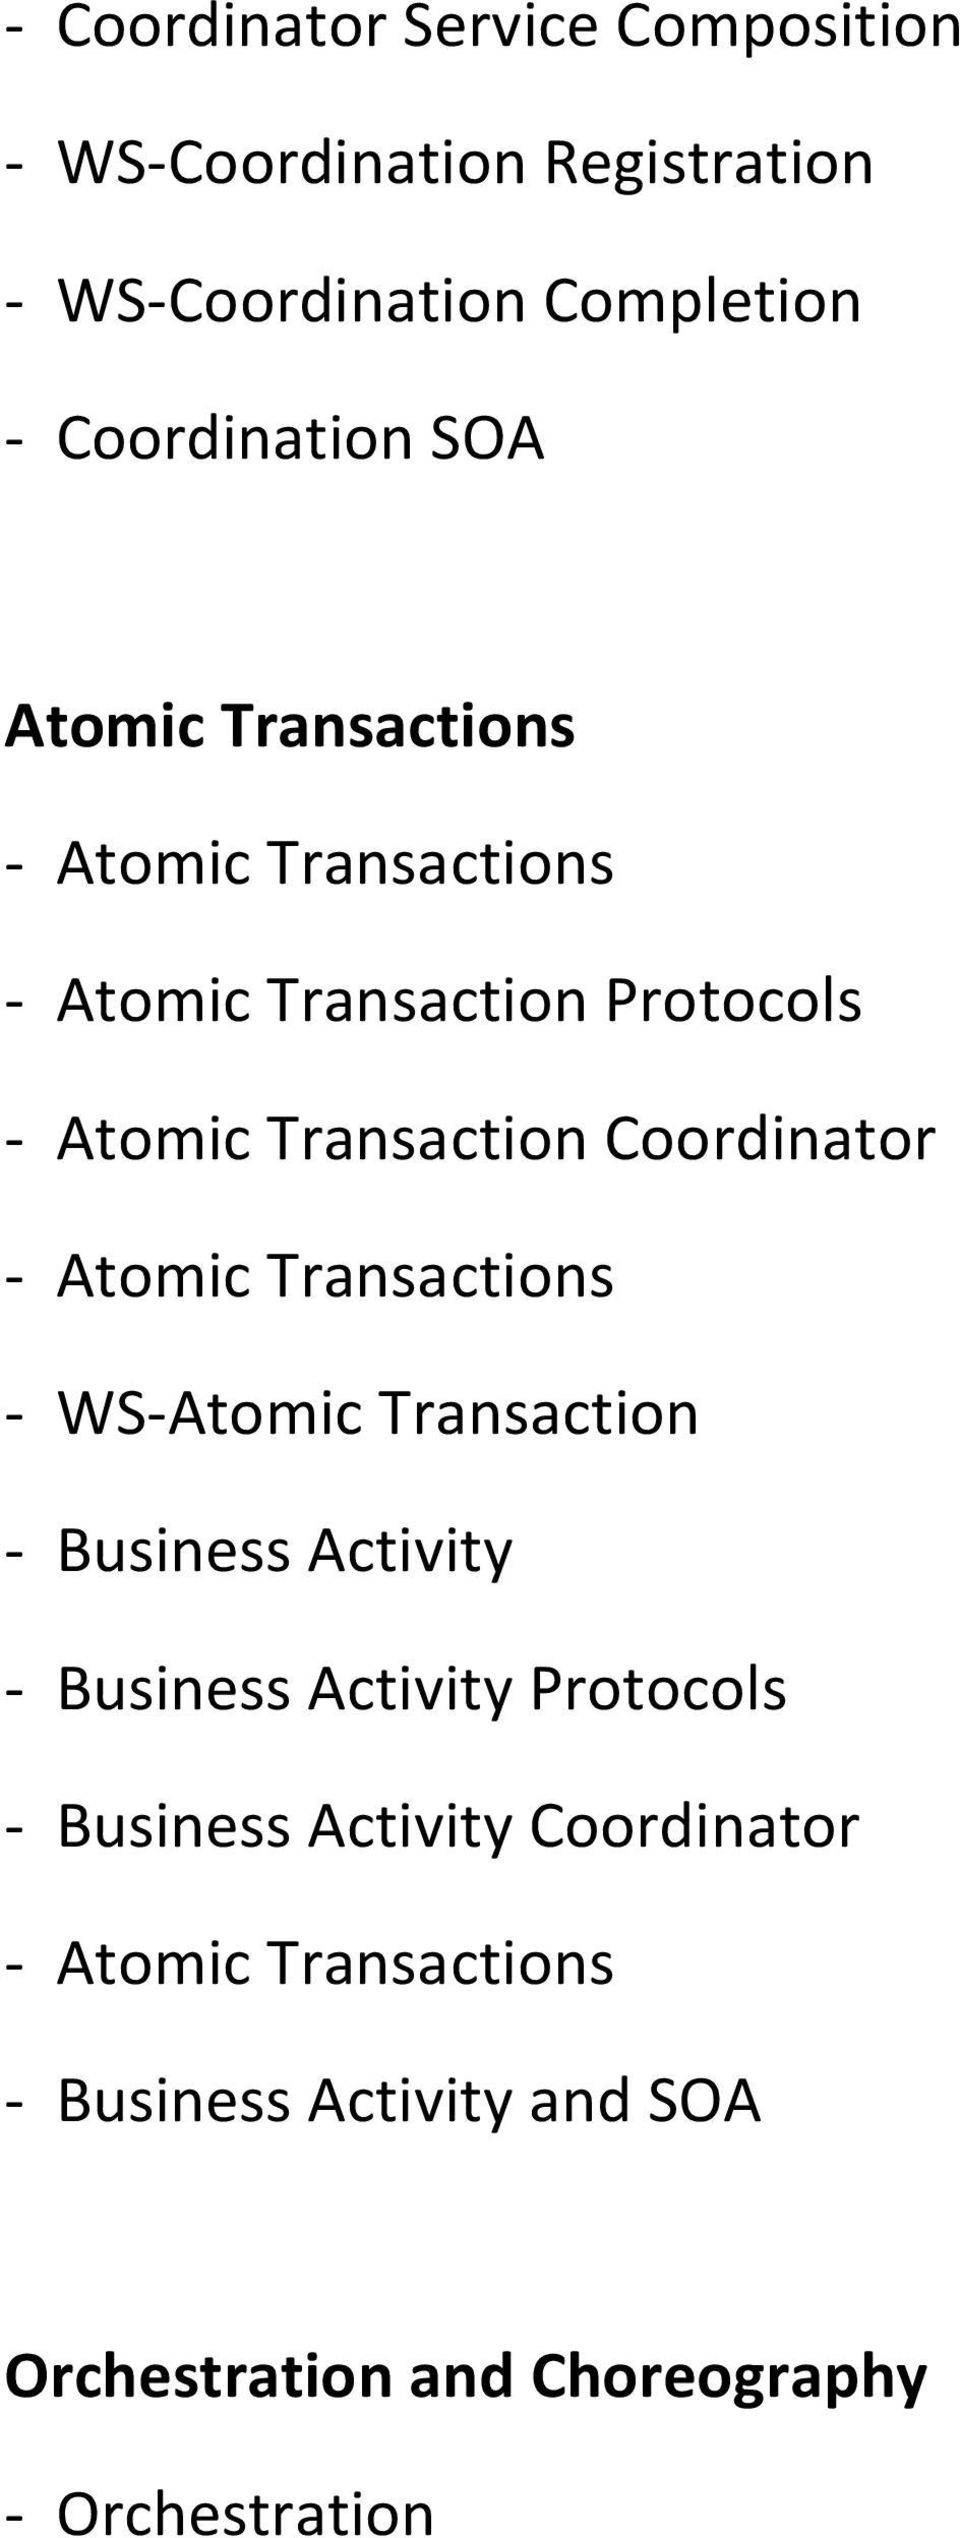 - Atomic Transactions - WS-Atomic Transaction - Business Activity - Business Activity Protocols - Business